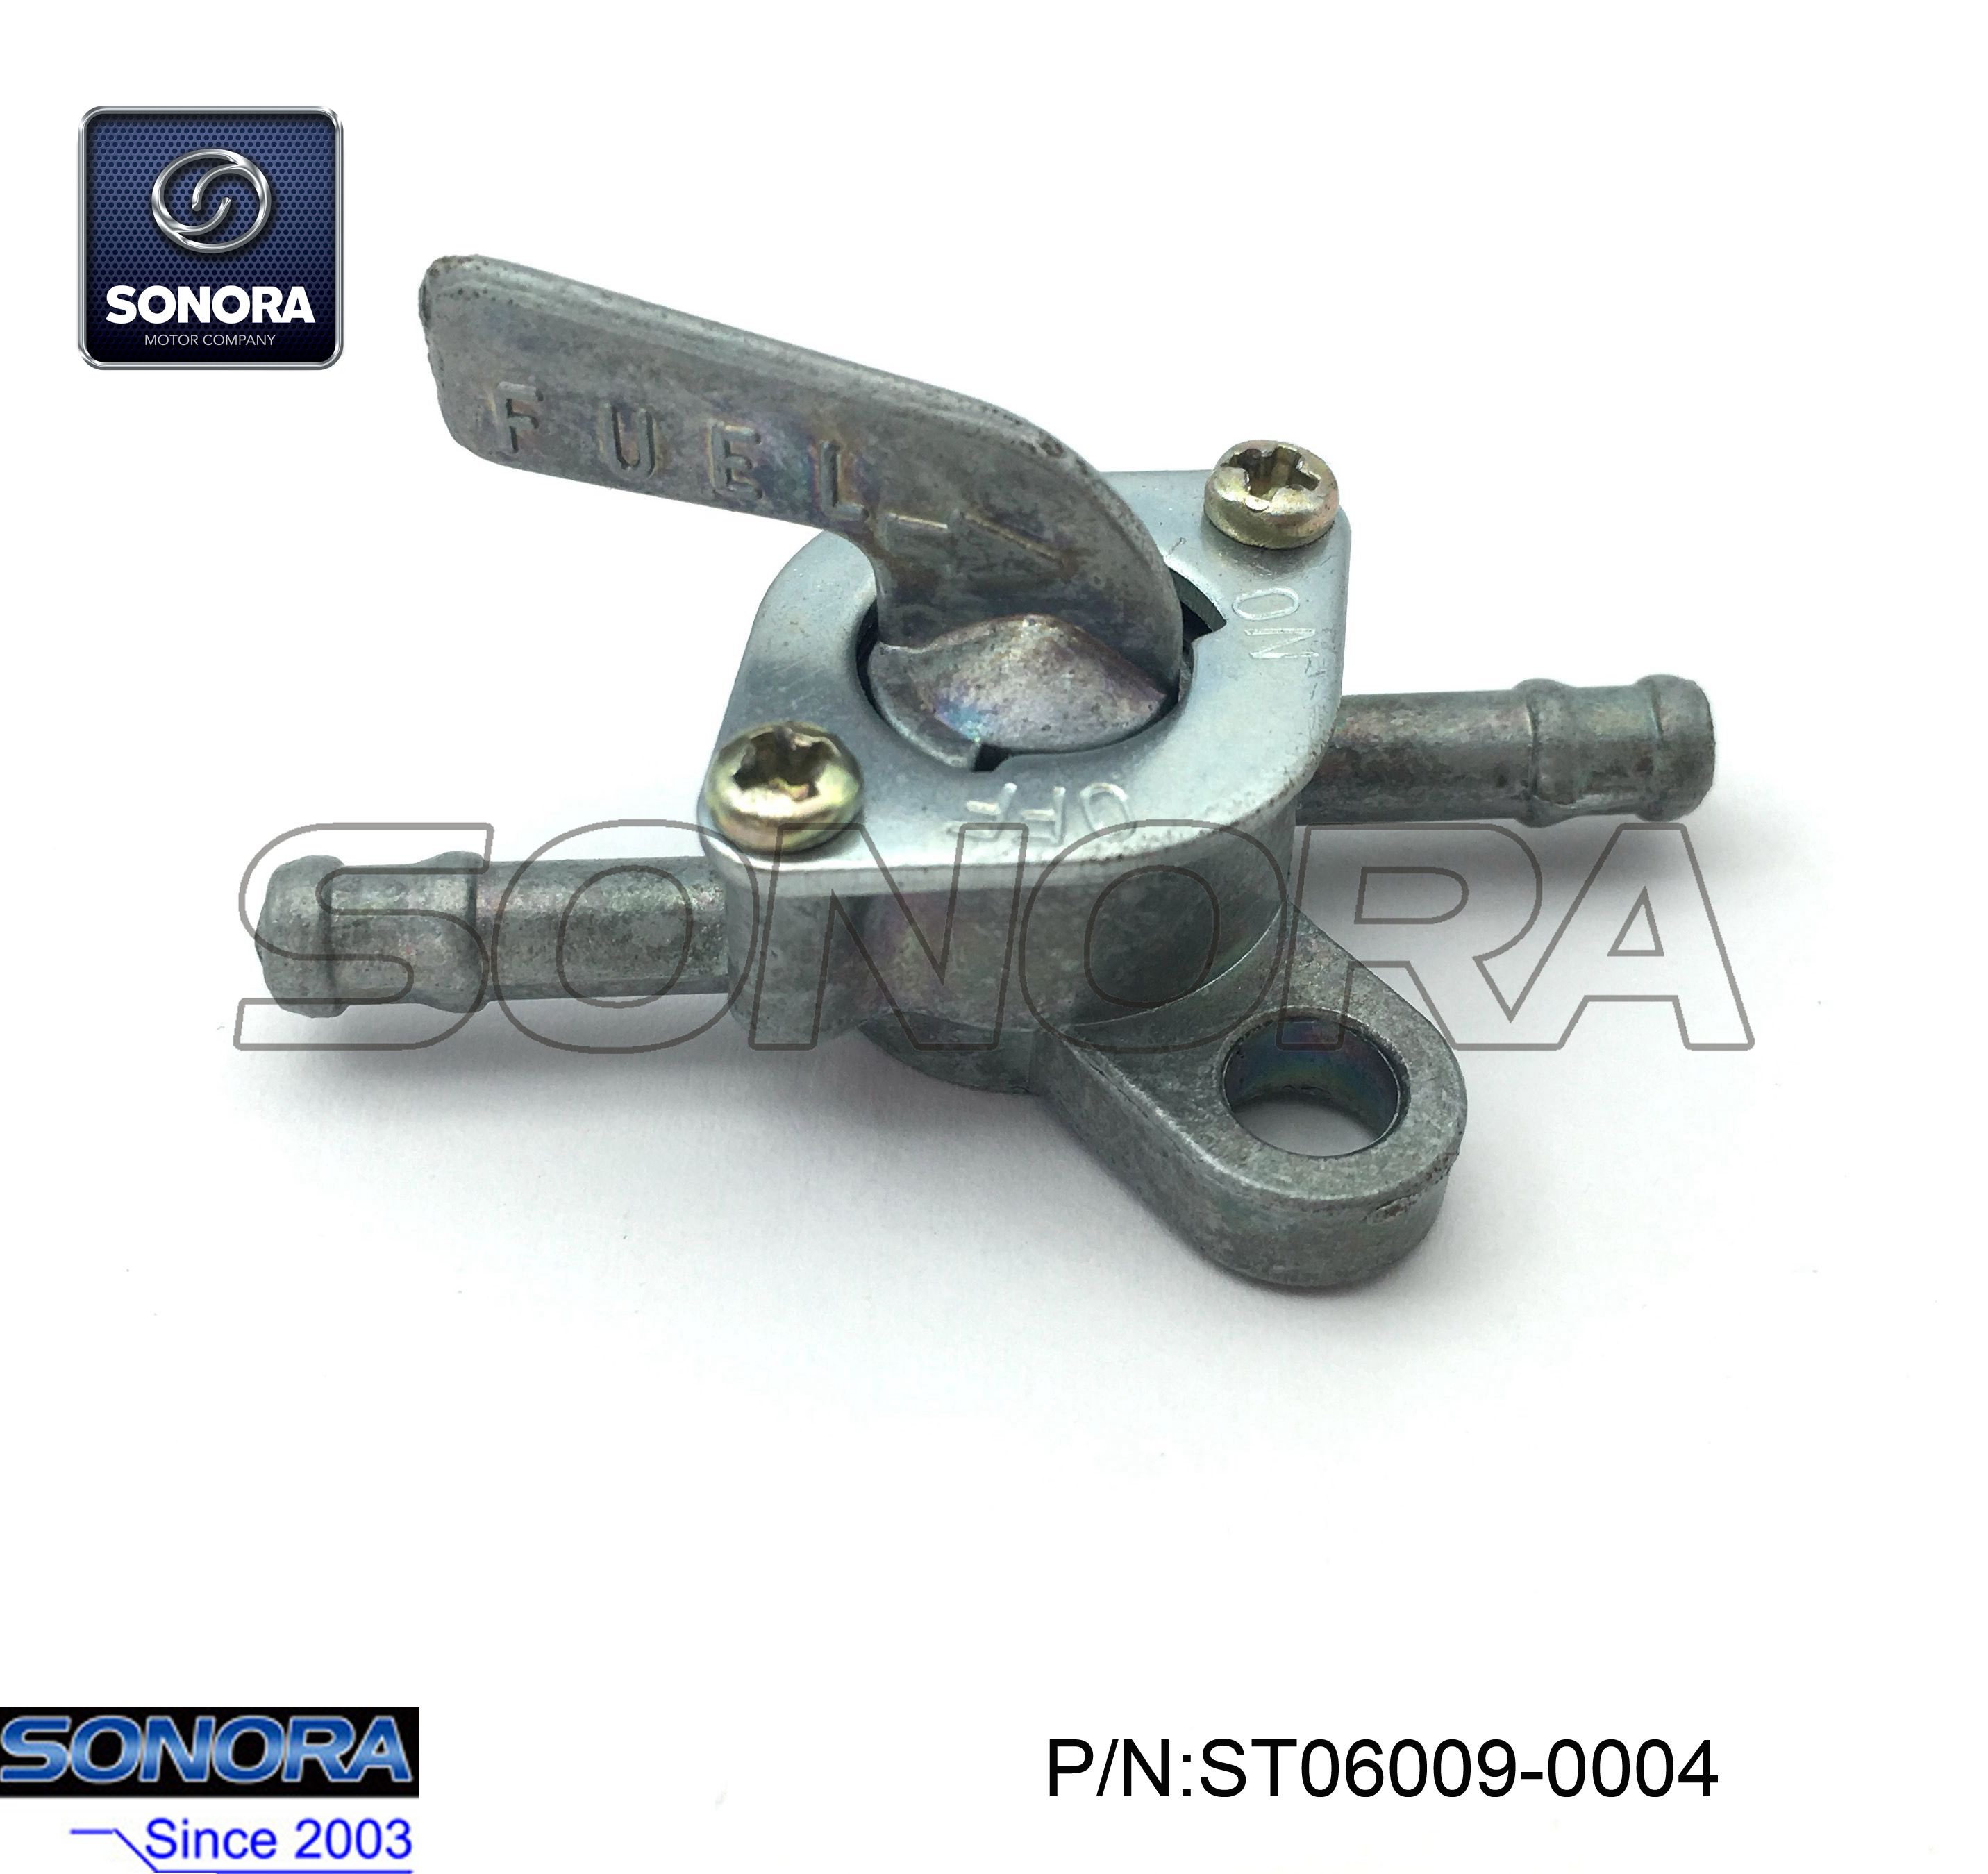 ST06009-0004 UNIVERSAL Fuel Switch Assy.